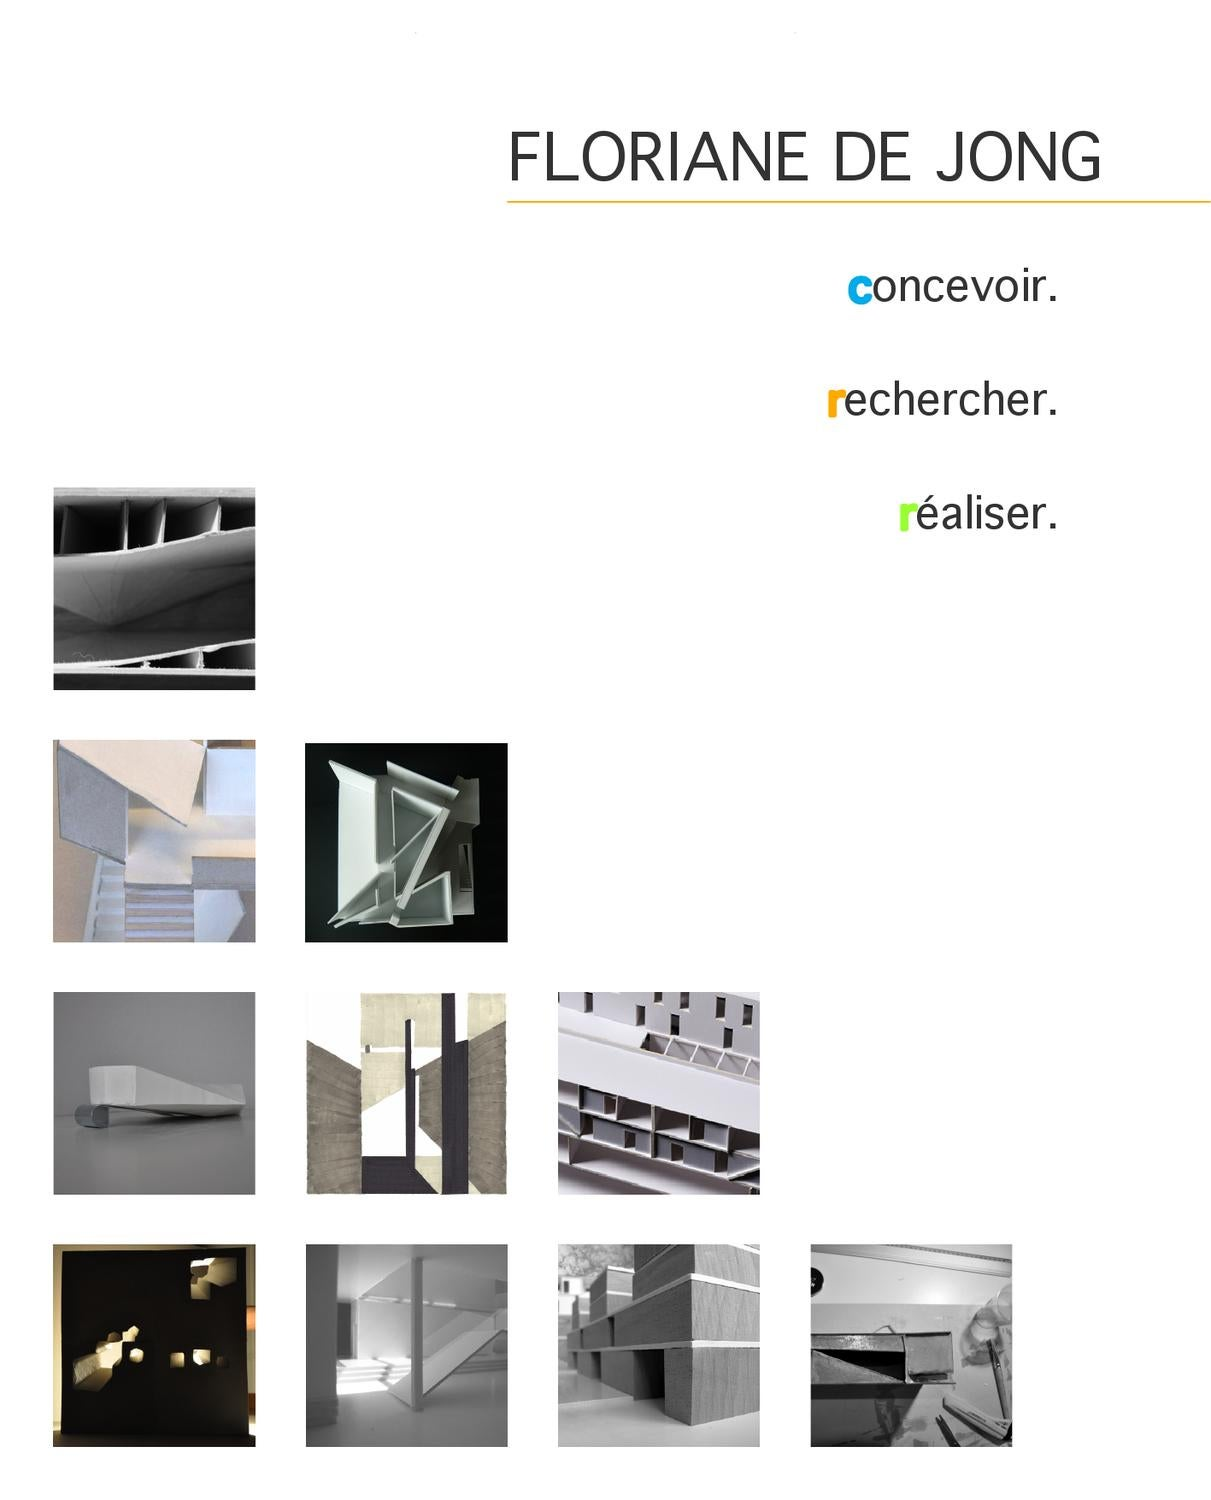 floriane de jong portfolio by floriane de jong issuu. Black Bedroom Furniture Sets. Home Design Ideas